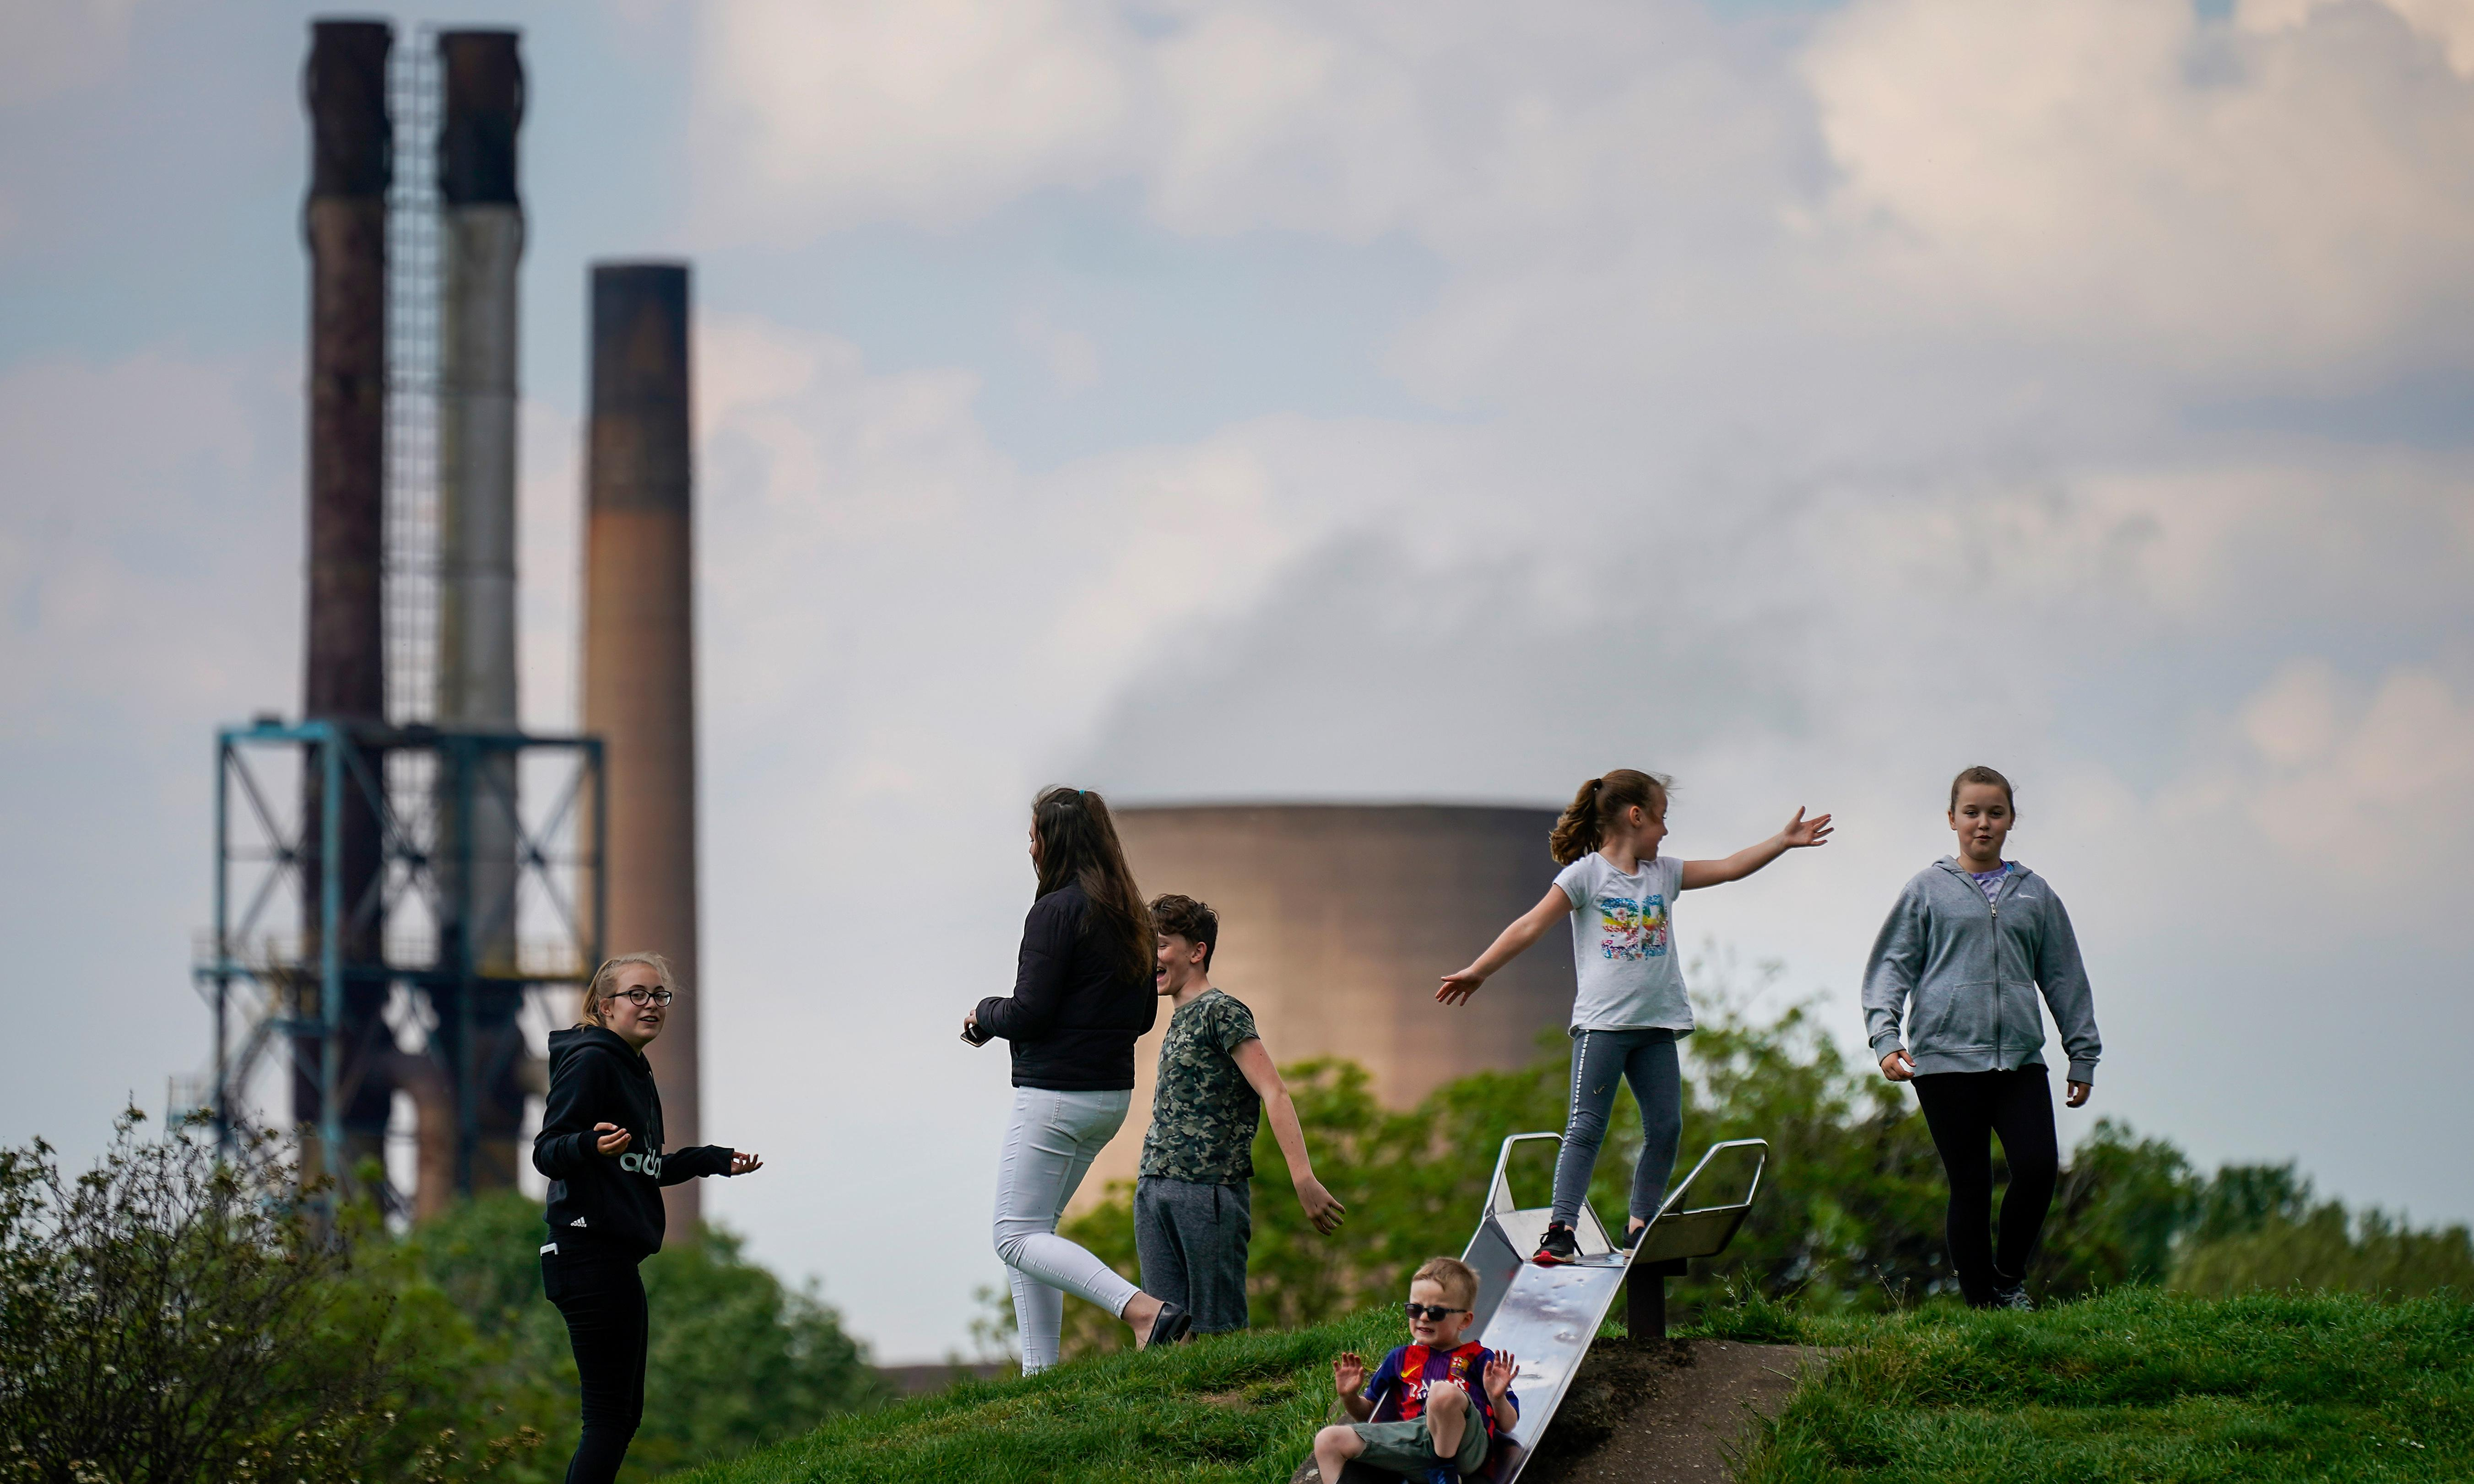 British Steel's Scunthorpe works could be saved by a new ownership model